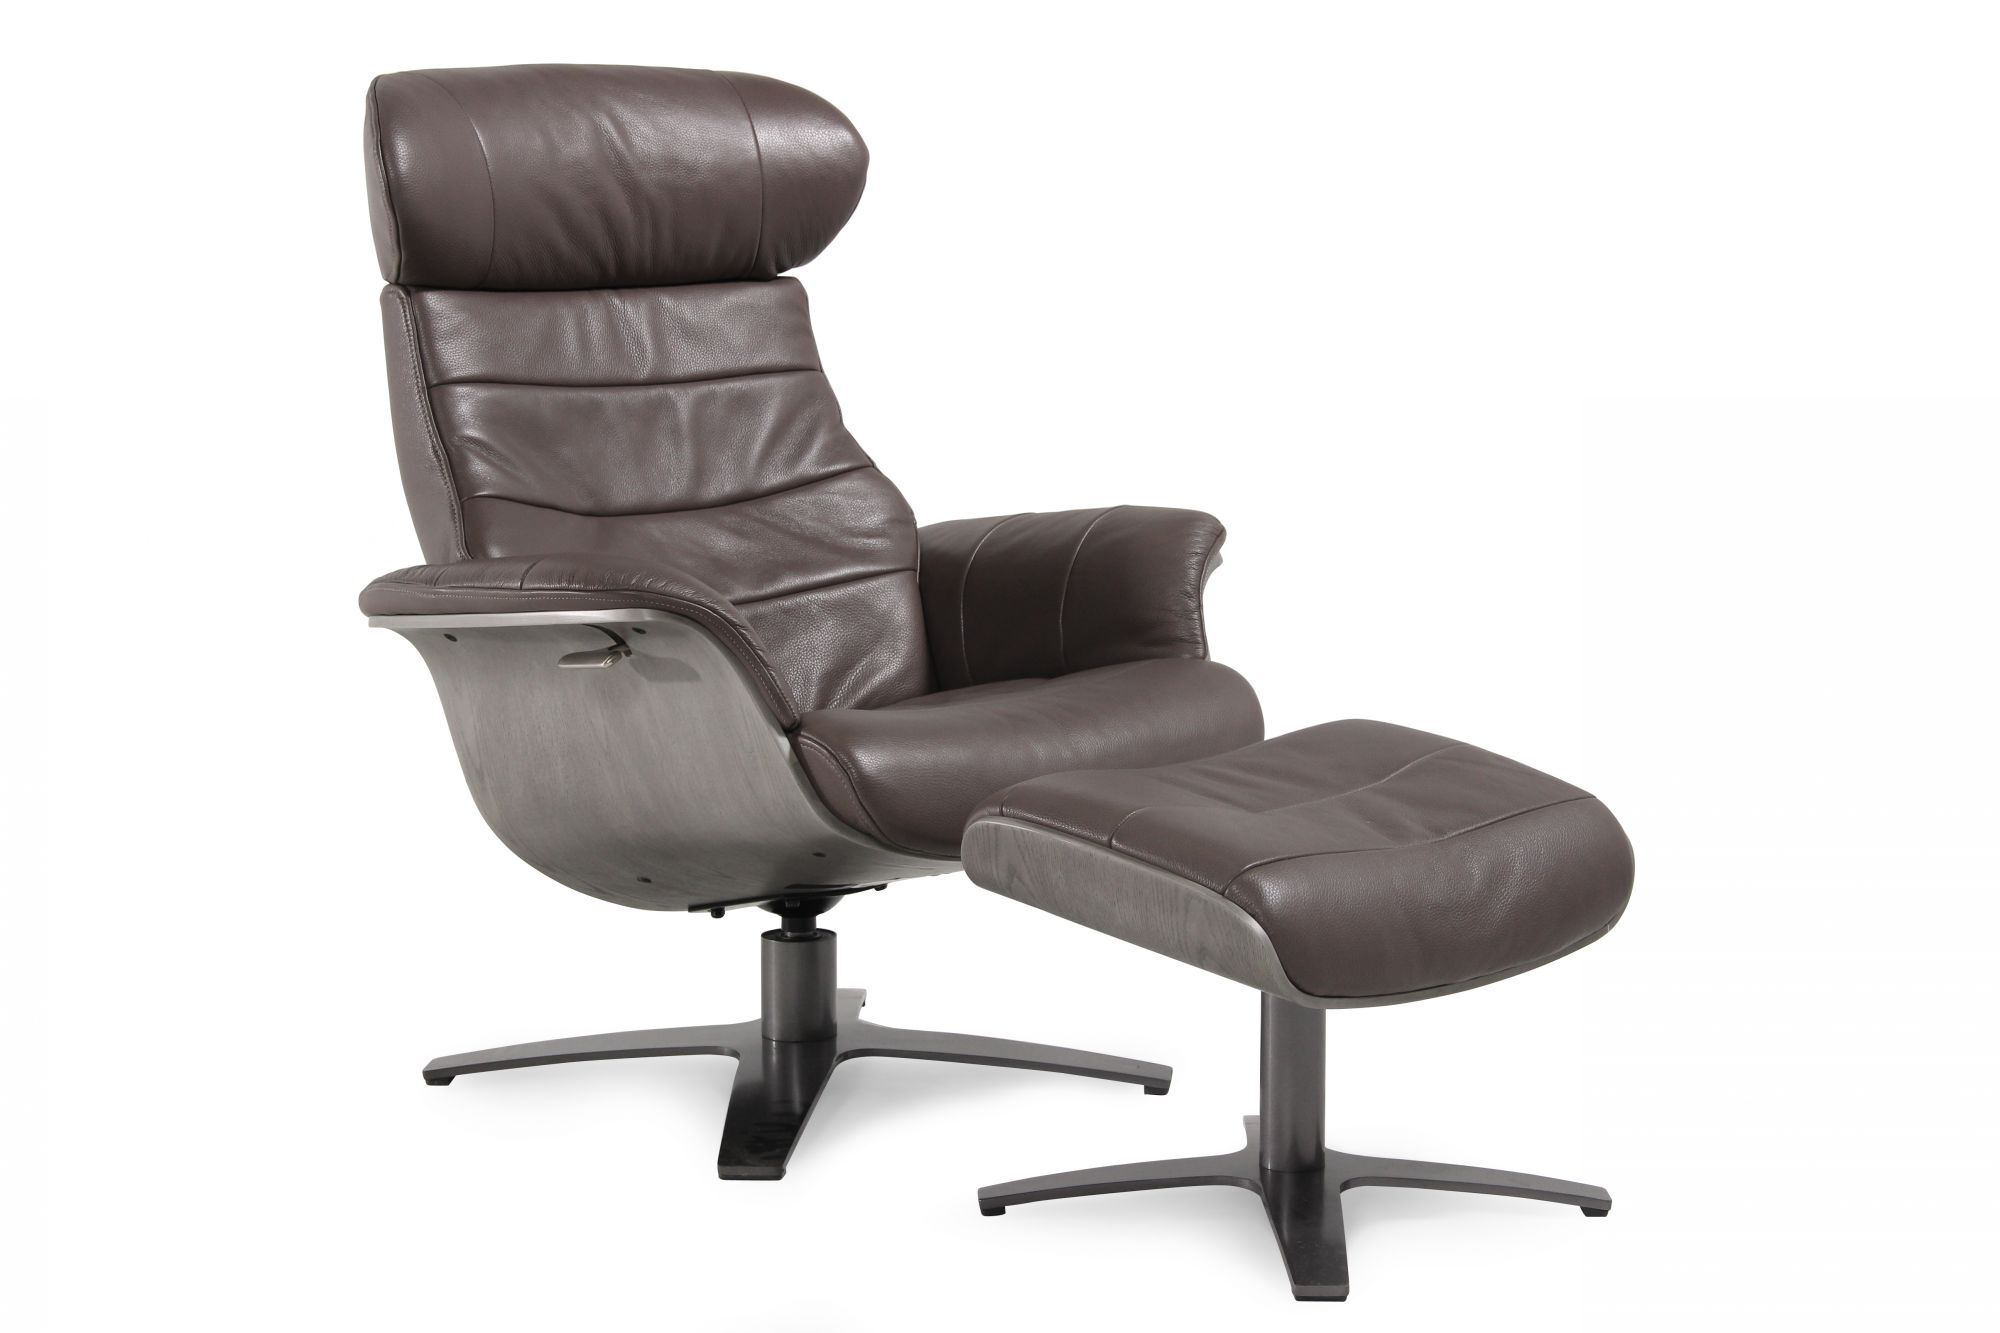 Boulevard Grey Leather Swivel Recliner and Ottoman  sc 1 st  Mathis Brothers & Boulevard Grey Leather Swivel Recliner and Ottoman   Mathis ... islam-shia.org